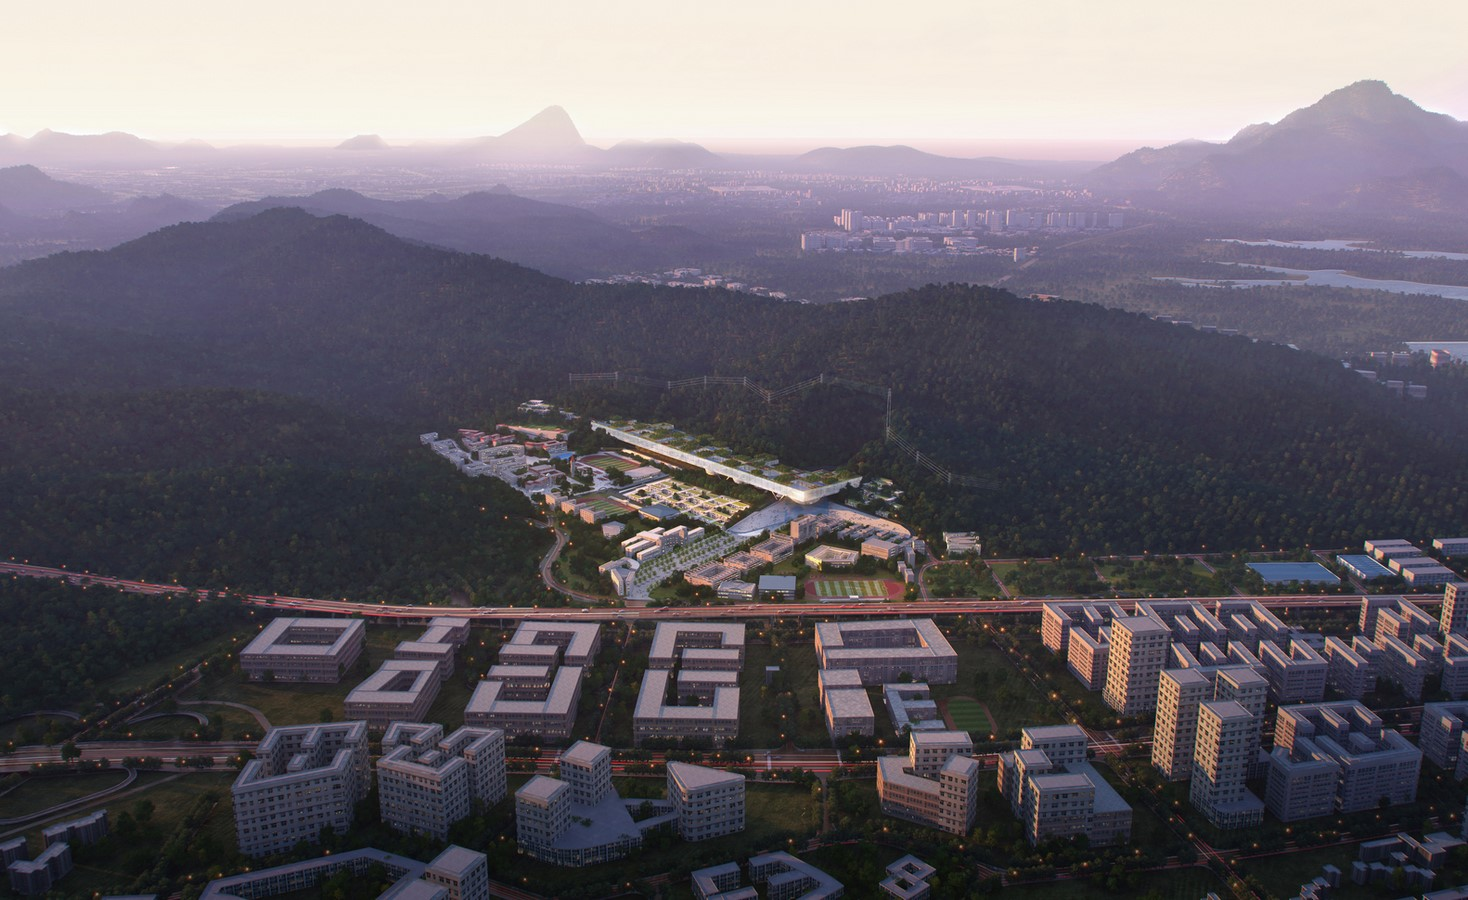 Shenzhen Institute Of Design And Innovation to be designed by Dominique Perrault Architecture - Sheet2